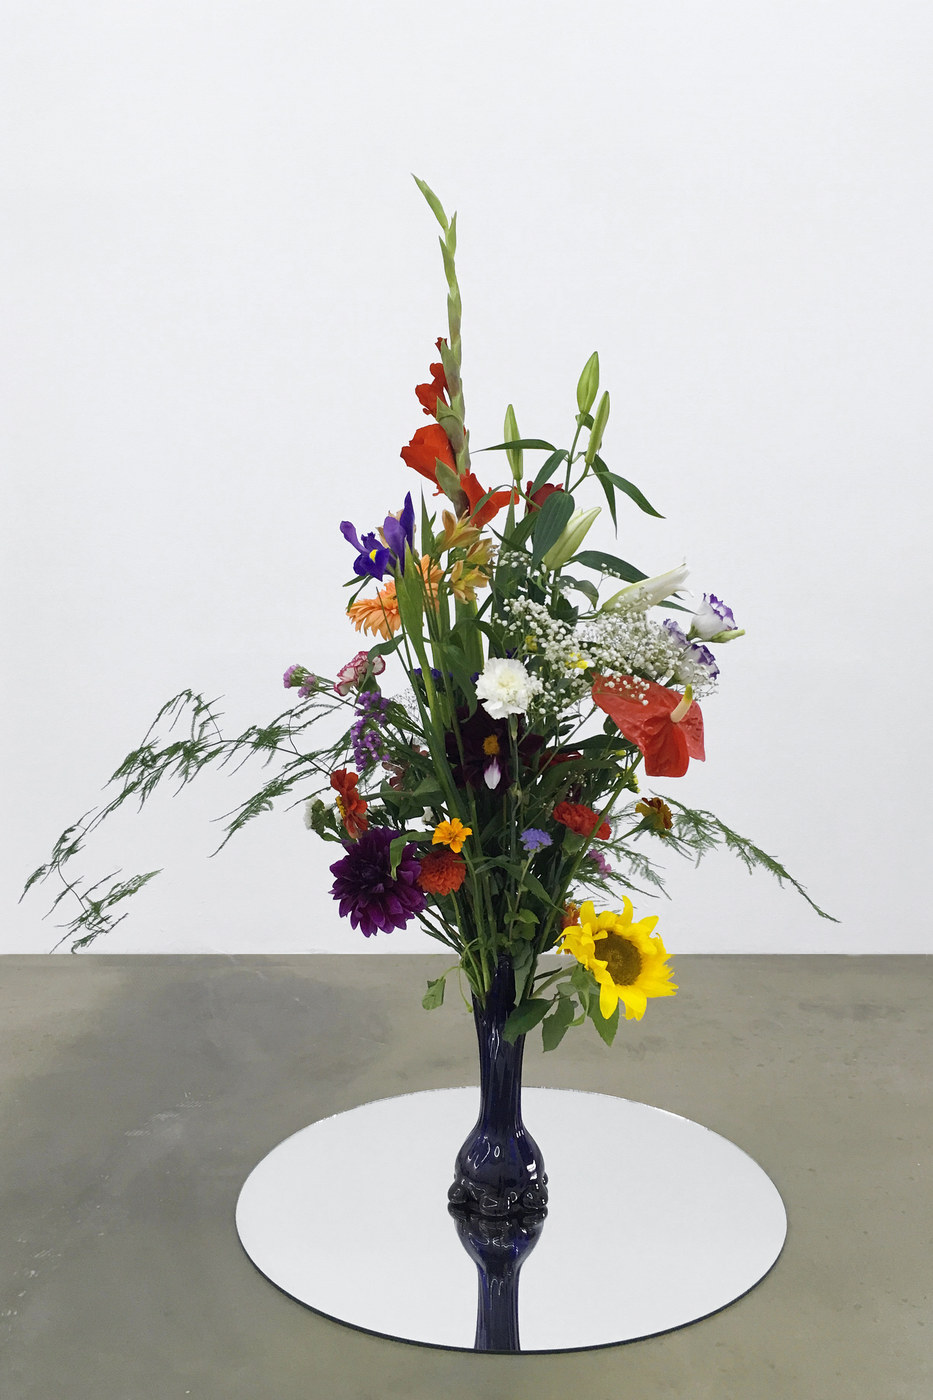 12. Alice Tomaselli, Bouquet of 54 natural flowers + 1 artificial, 2012_2016